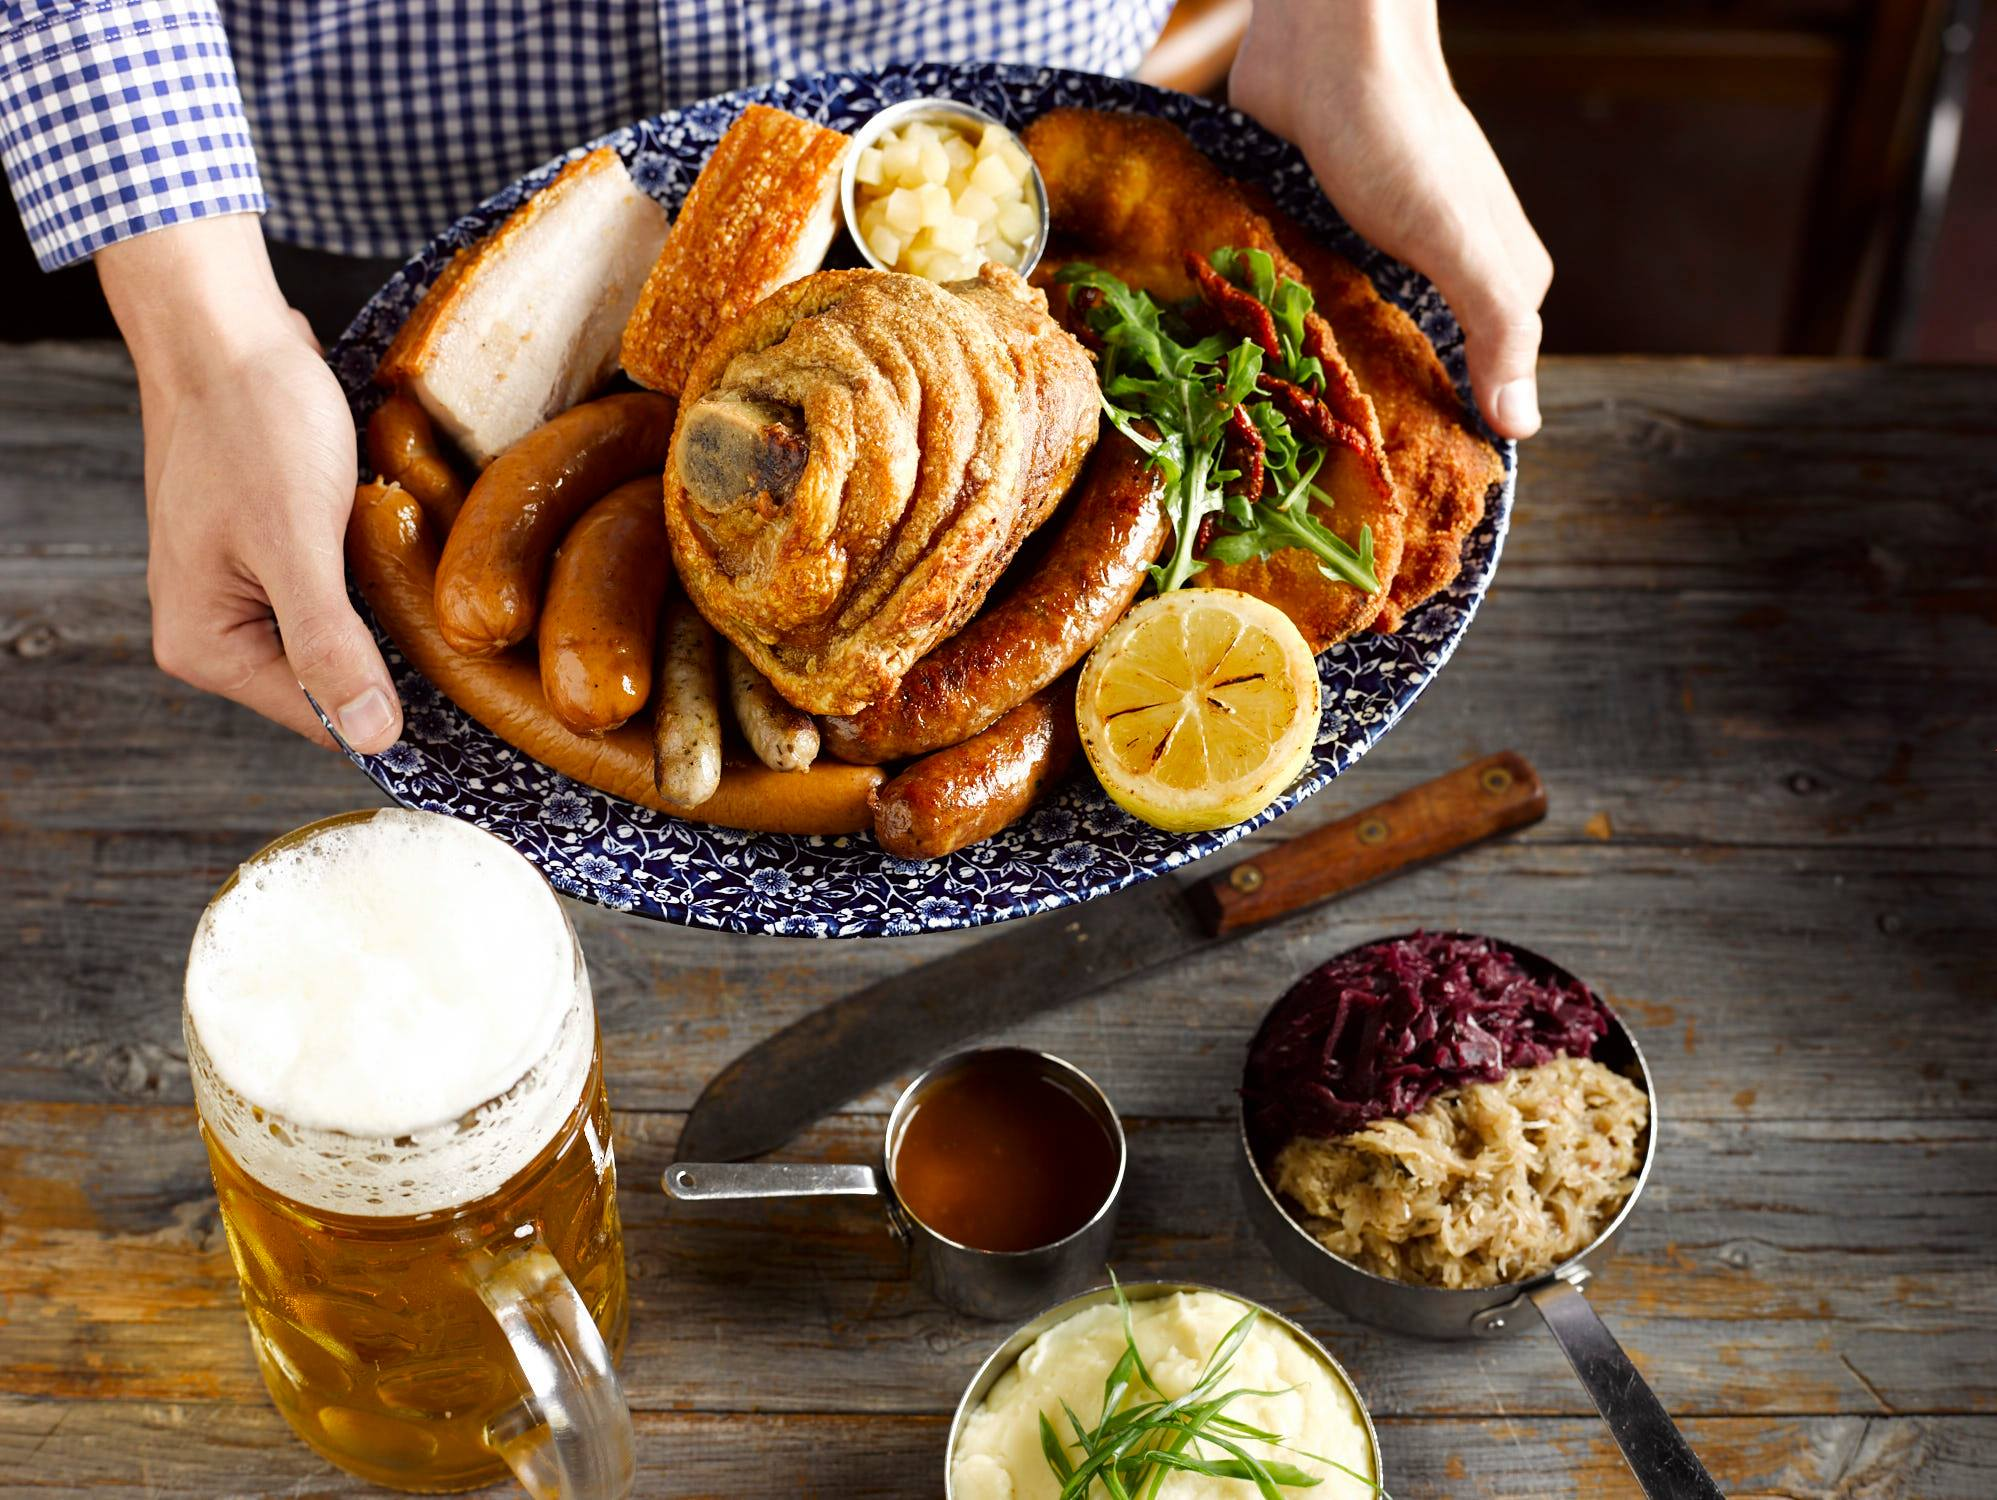 OKTOBERFEST FEASTING MENUS - From crispy pork knuckles to warm salty pretzels and platters of unpronounceable Bavarian meats, you and the crew can tuck into the most delicious authentic feasts for the full six weeks of Oktoberfest/SEE OUR FEASTING MENUS